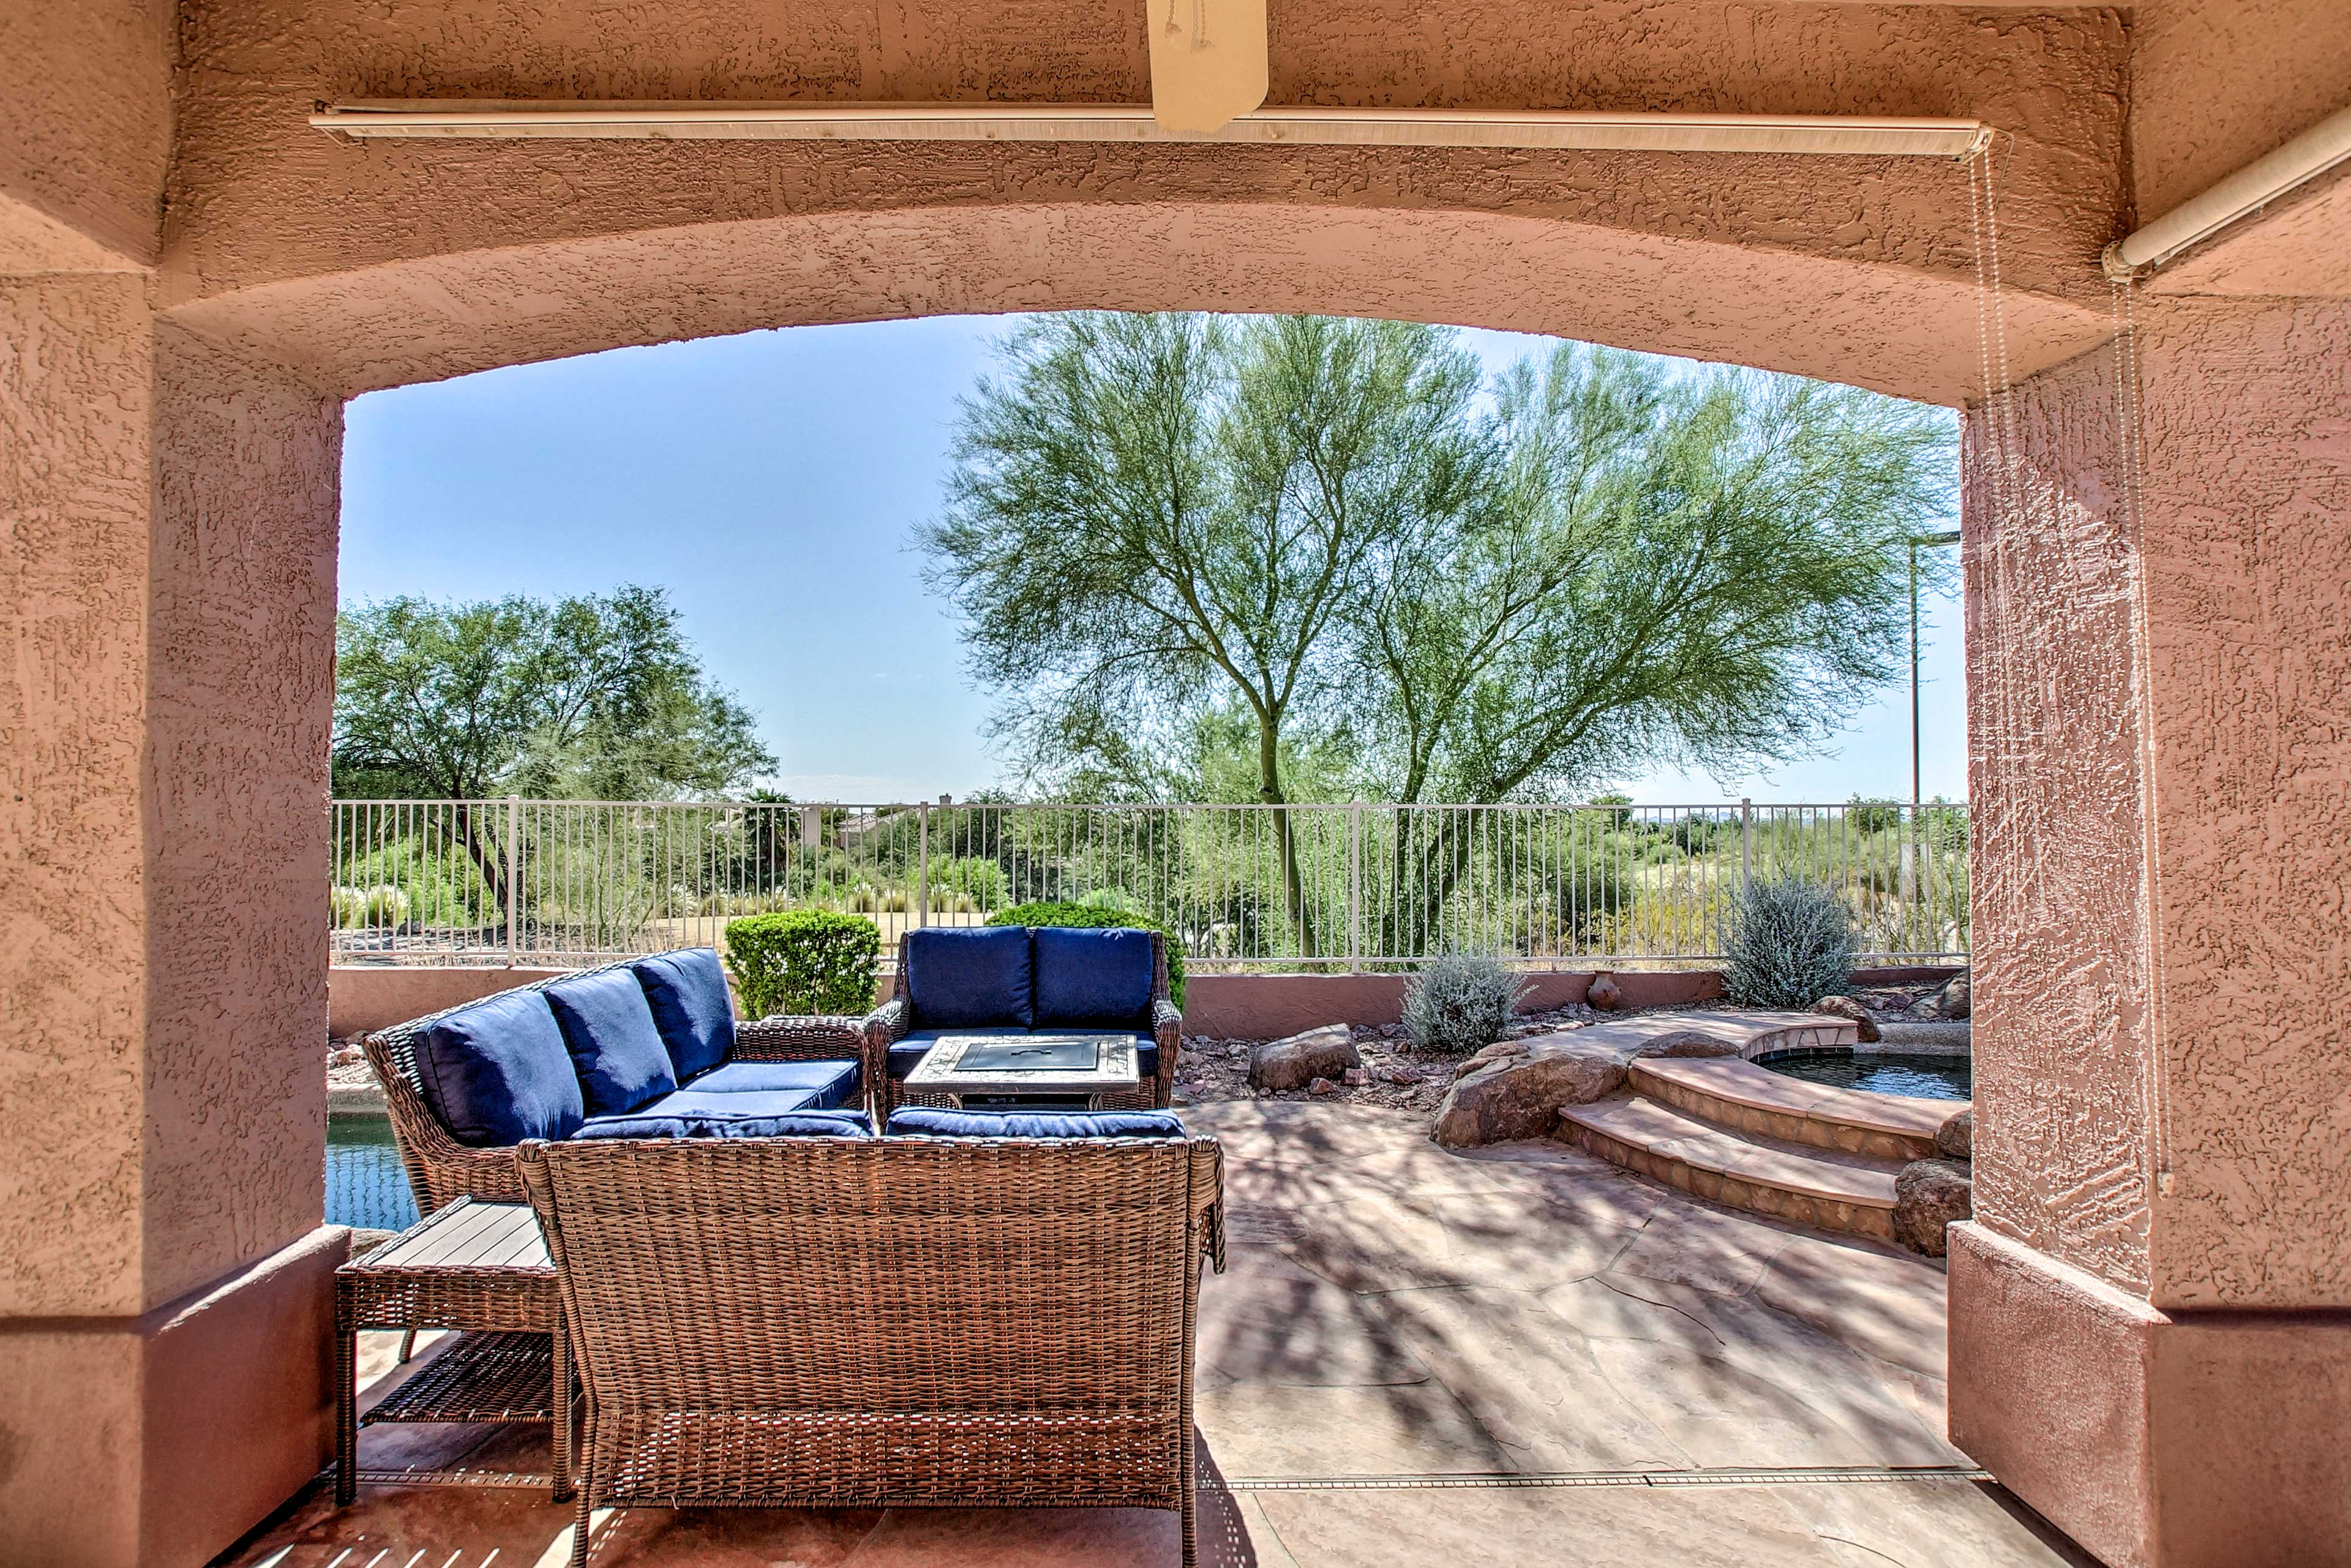 Step out onto the spacious patio each morning and admire the views.